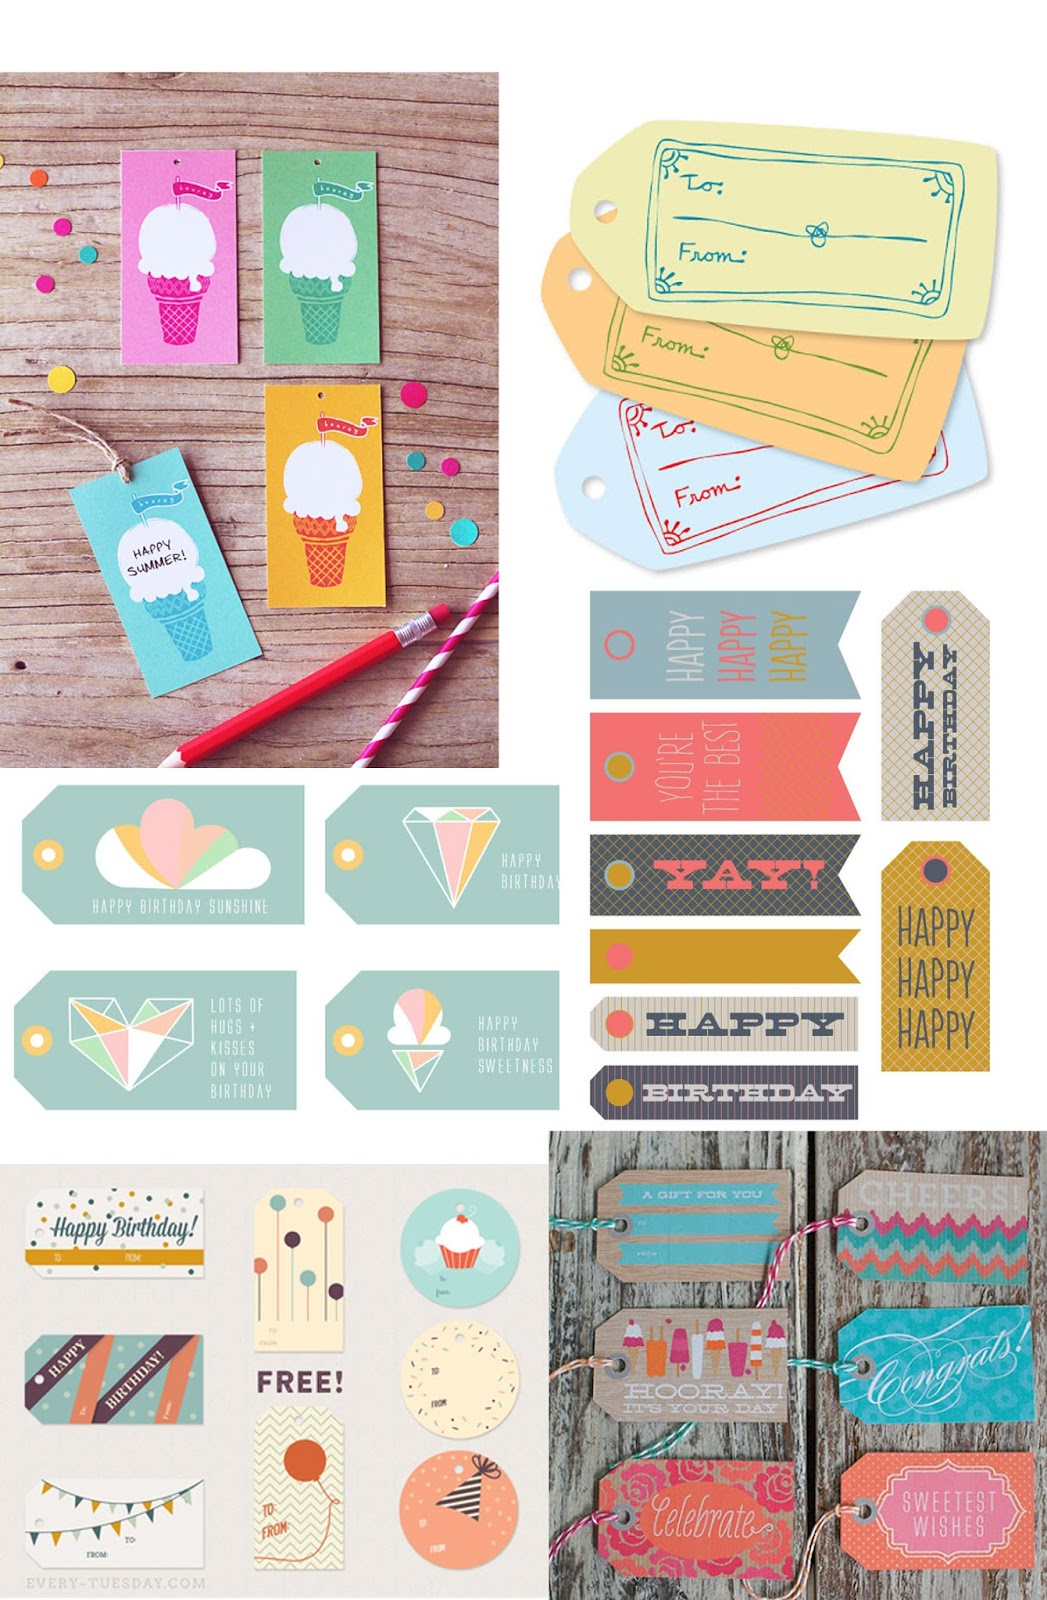 Tell free printable birthday tags tell love and party free free free i love free i love gift tags like these not only because they are so dang cute but if you have some old boring wrapping paper or box negle Image collections